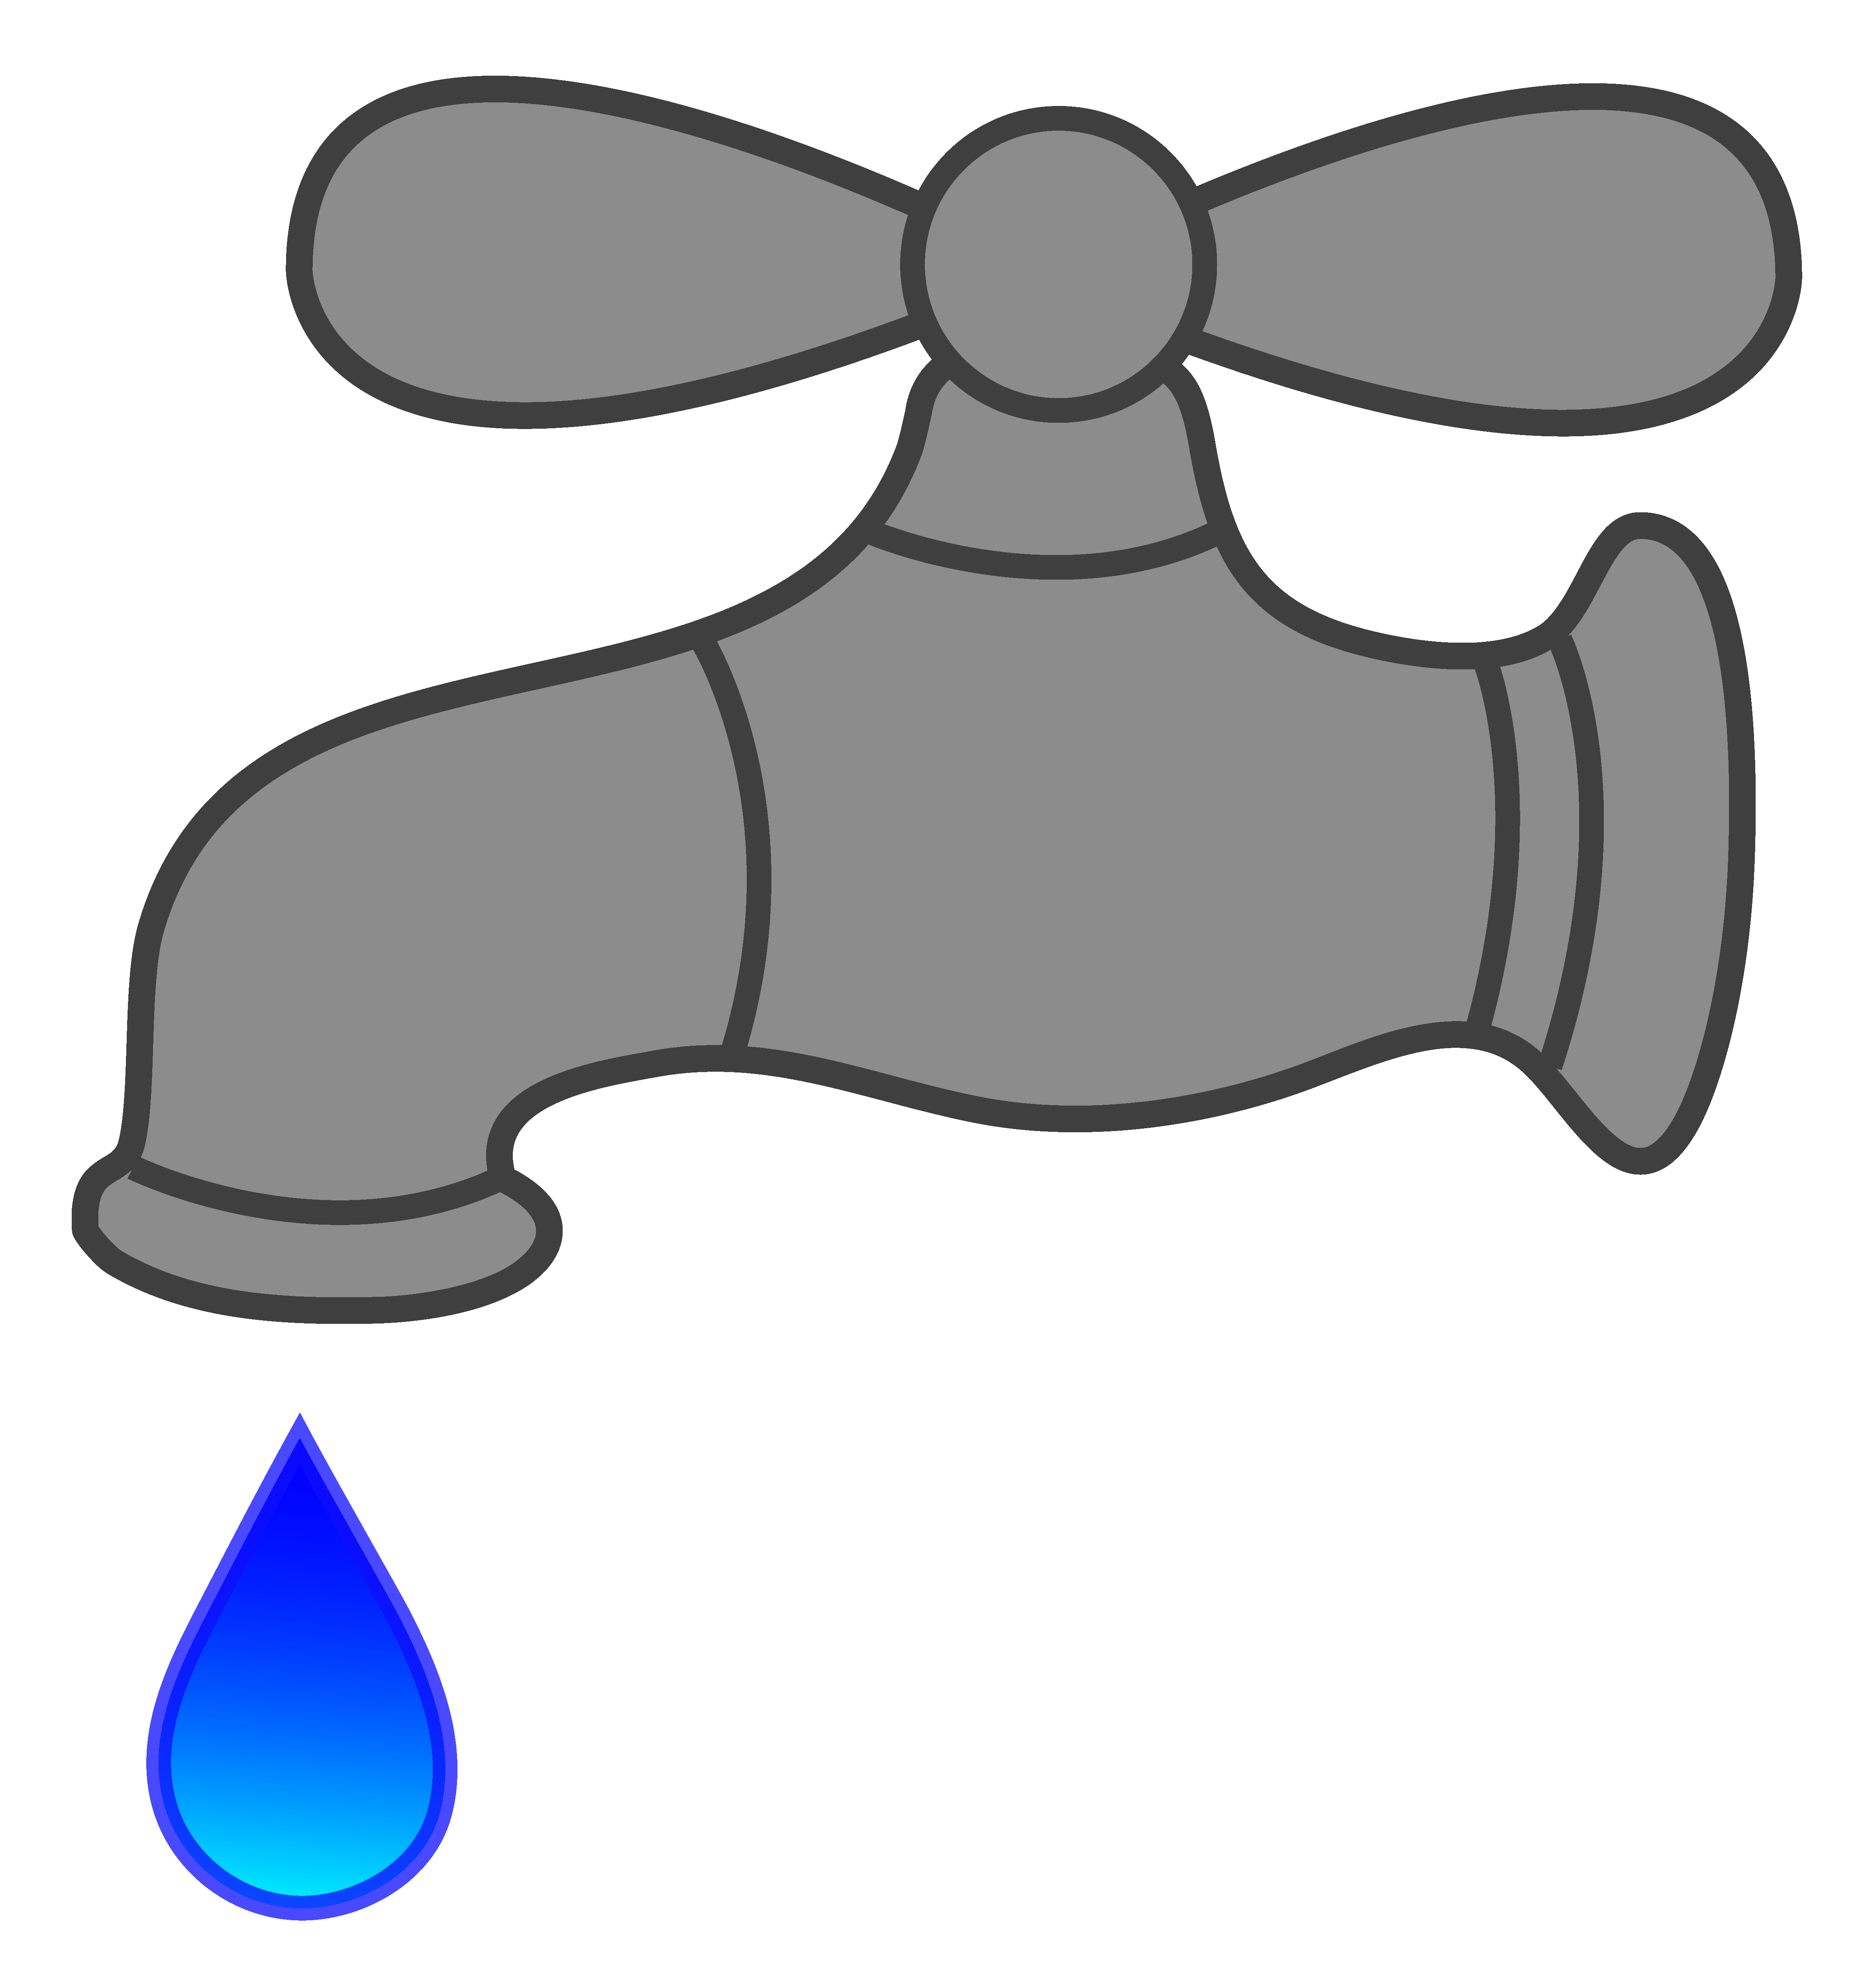 Dripping free image . Faucet clipart water main